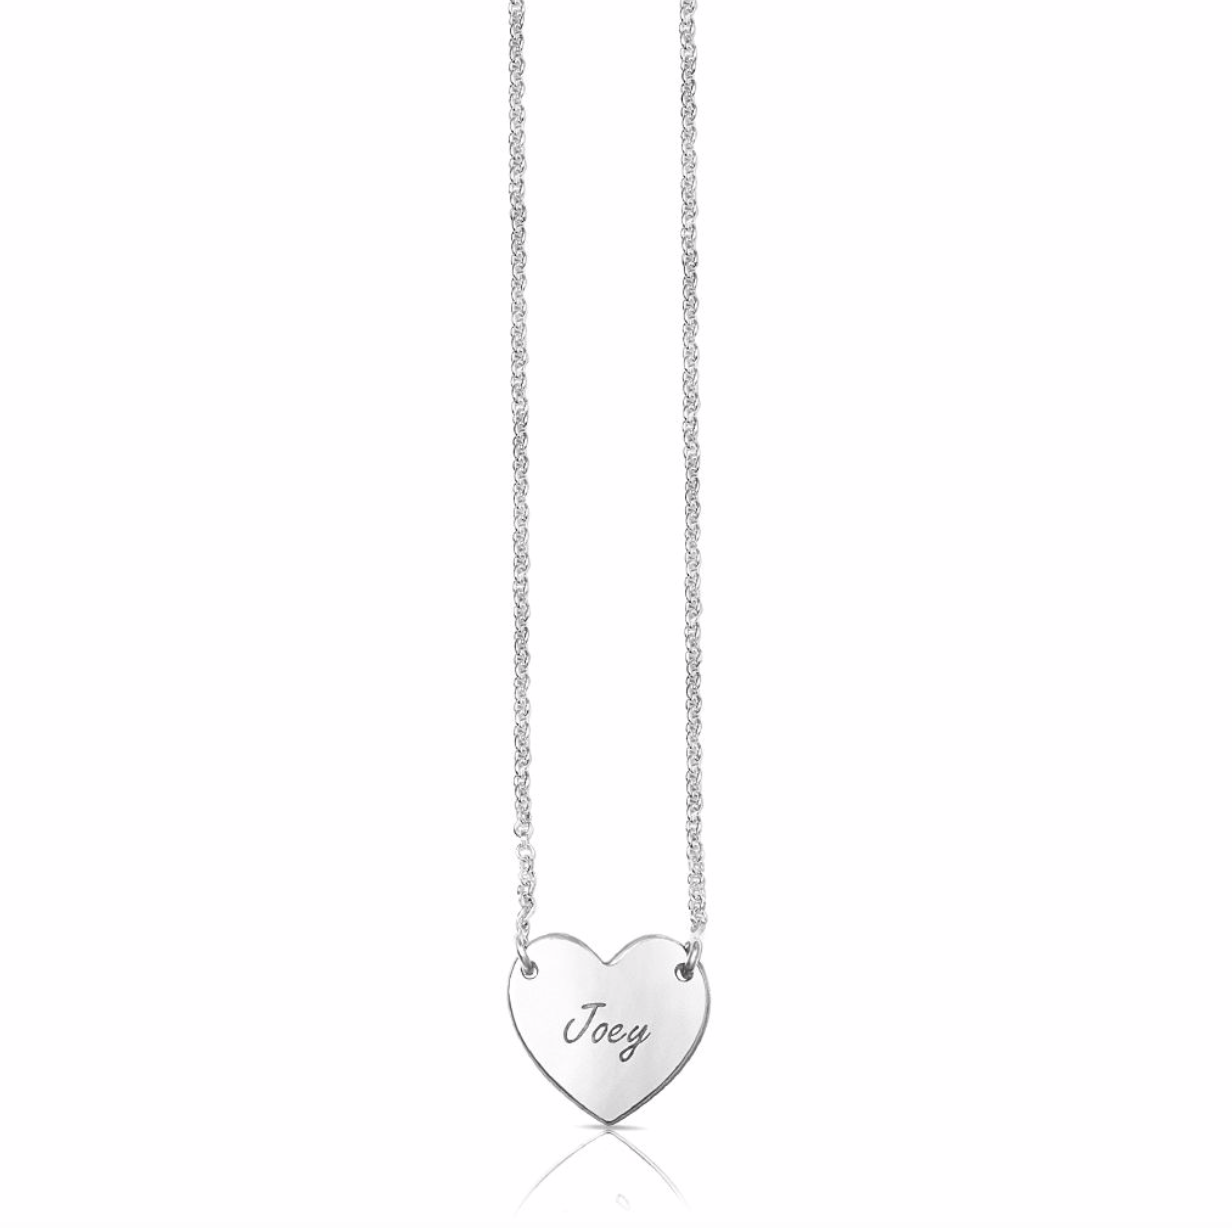 Joey Engraved Heart Necklace